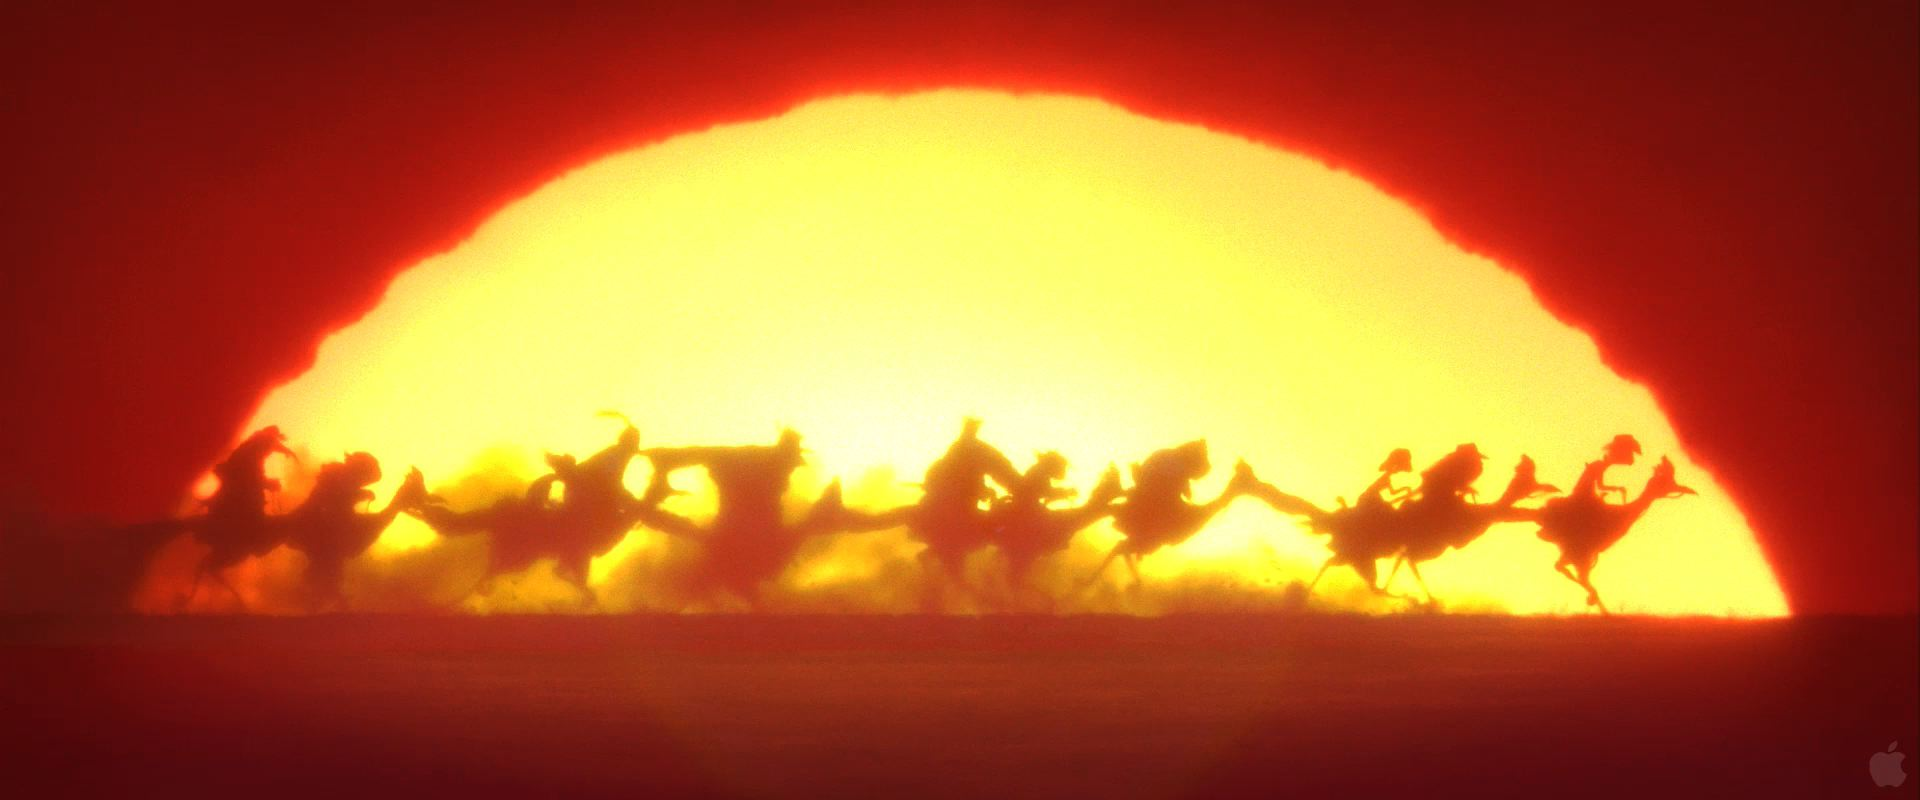 http://simplywallpaper.net/pictures/2011/01/07/Sunset-Rango-Wallpaper.jpg